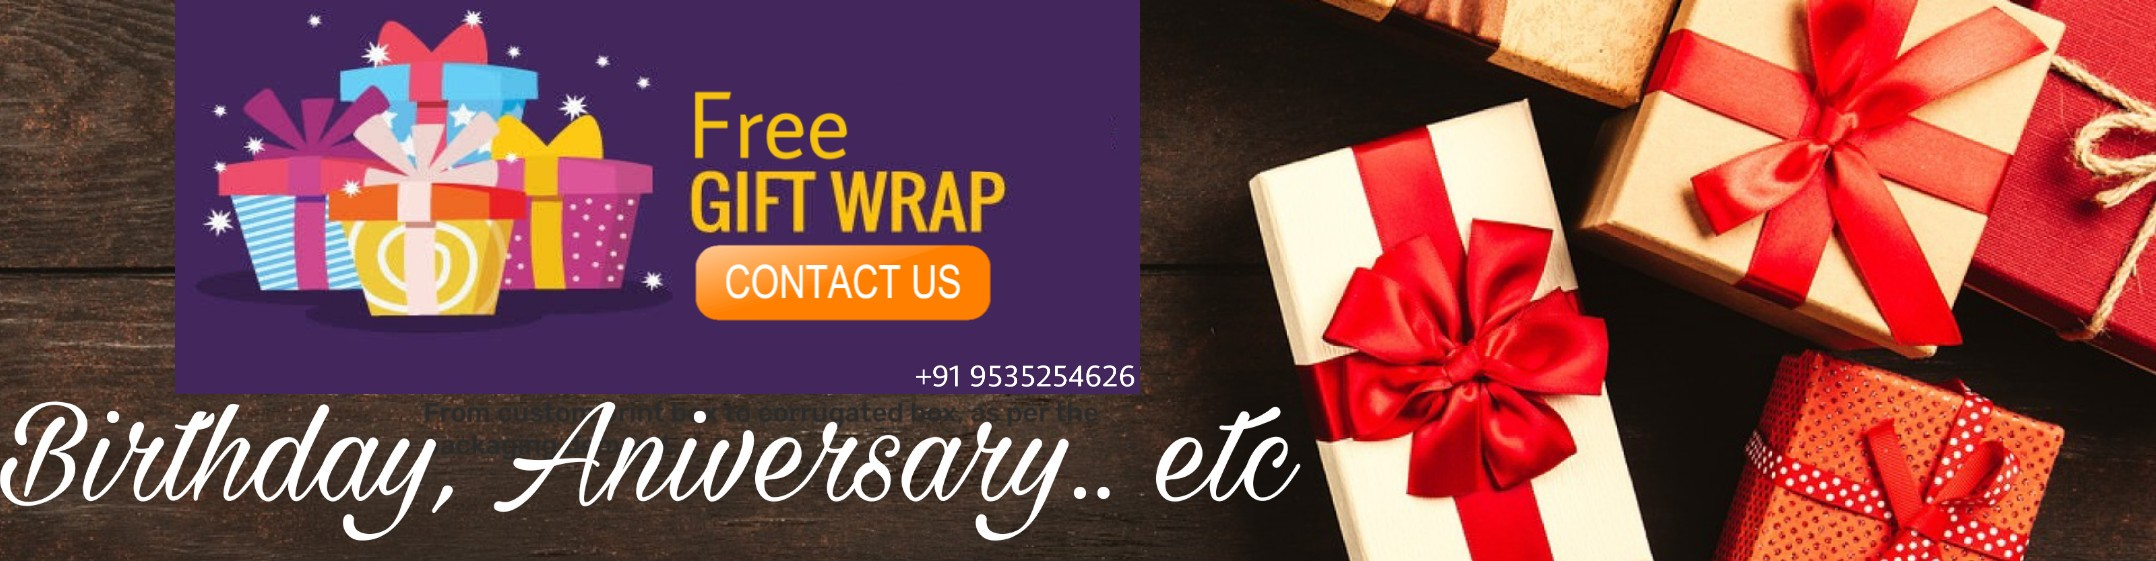 Birthday Chocolate Gift Buy Online